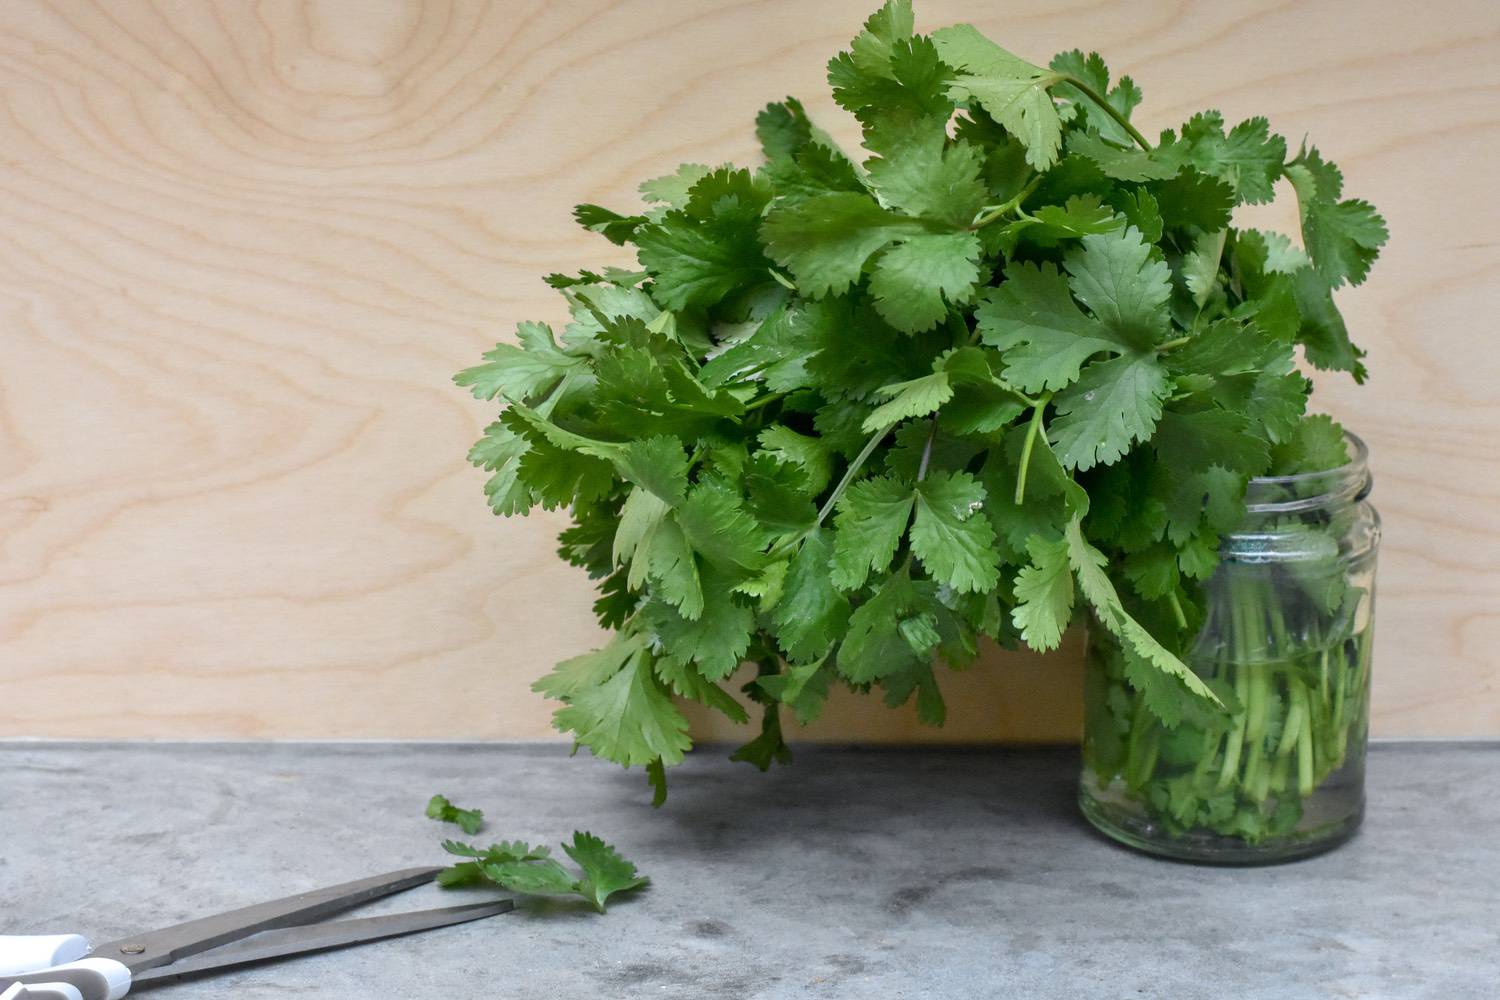 fresh herbs - Herbs were definitely one of my bad kitchen habits. I bought them often. Then they would vanish into the black hole of the fridge, only to be found rotting in their plastic bag weeks later.These days I buy them bunched and unpackaged and store them in a jar of water in the fridge door. This keeps them fresh AND visible.You'll find them loose in lots of places - greengrocers (often out the back - ask), street-markets, big Sainsbury's. Even my local corner shop has bunches. Just not as part of an online shop.In the summer, it's worth buying potted basil, as it will last for ages (winter ones are grown hydroponically so will die too quickly in your kitchen).